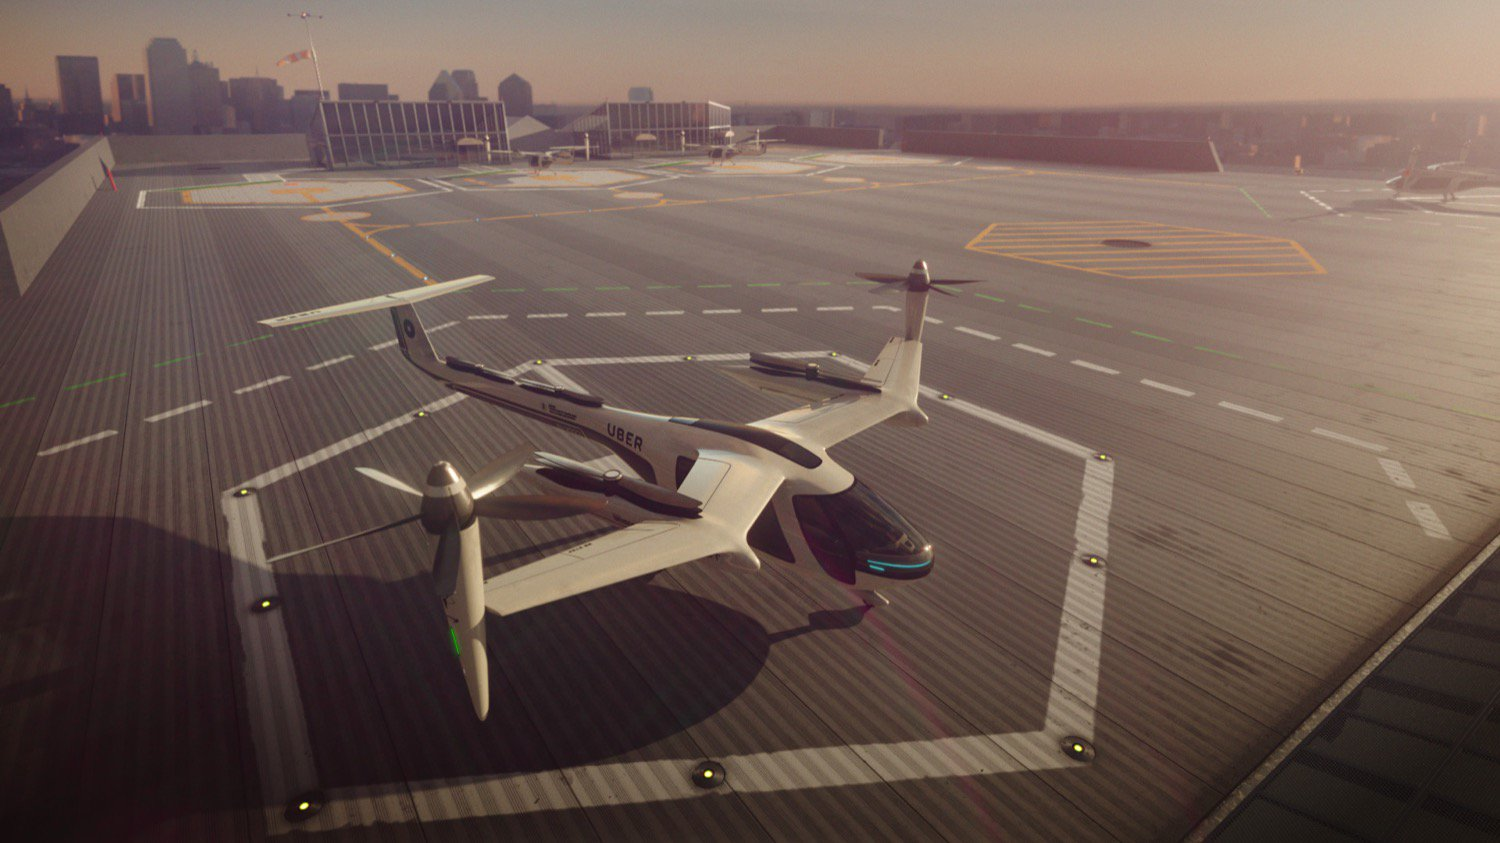 The architects designed six stops of the future for the flying Uber